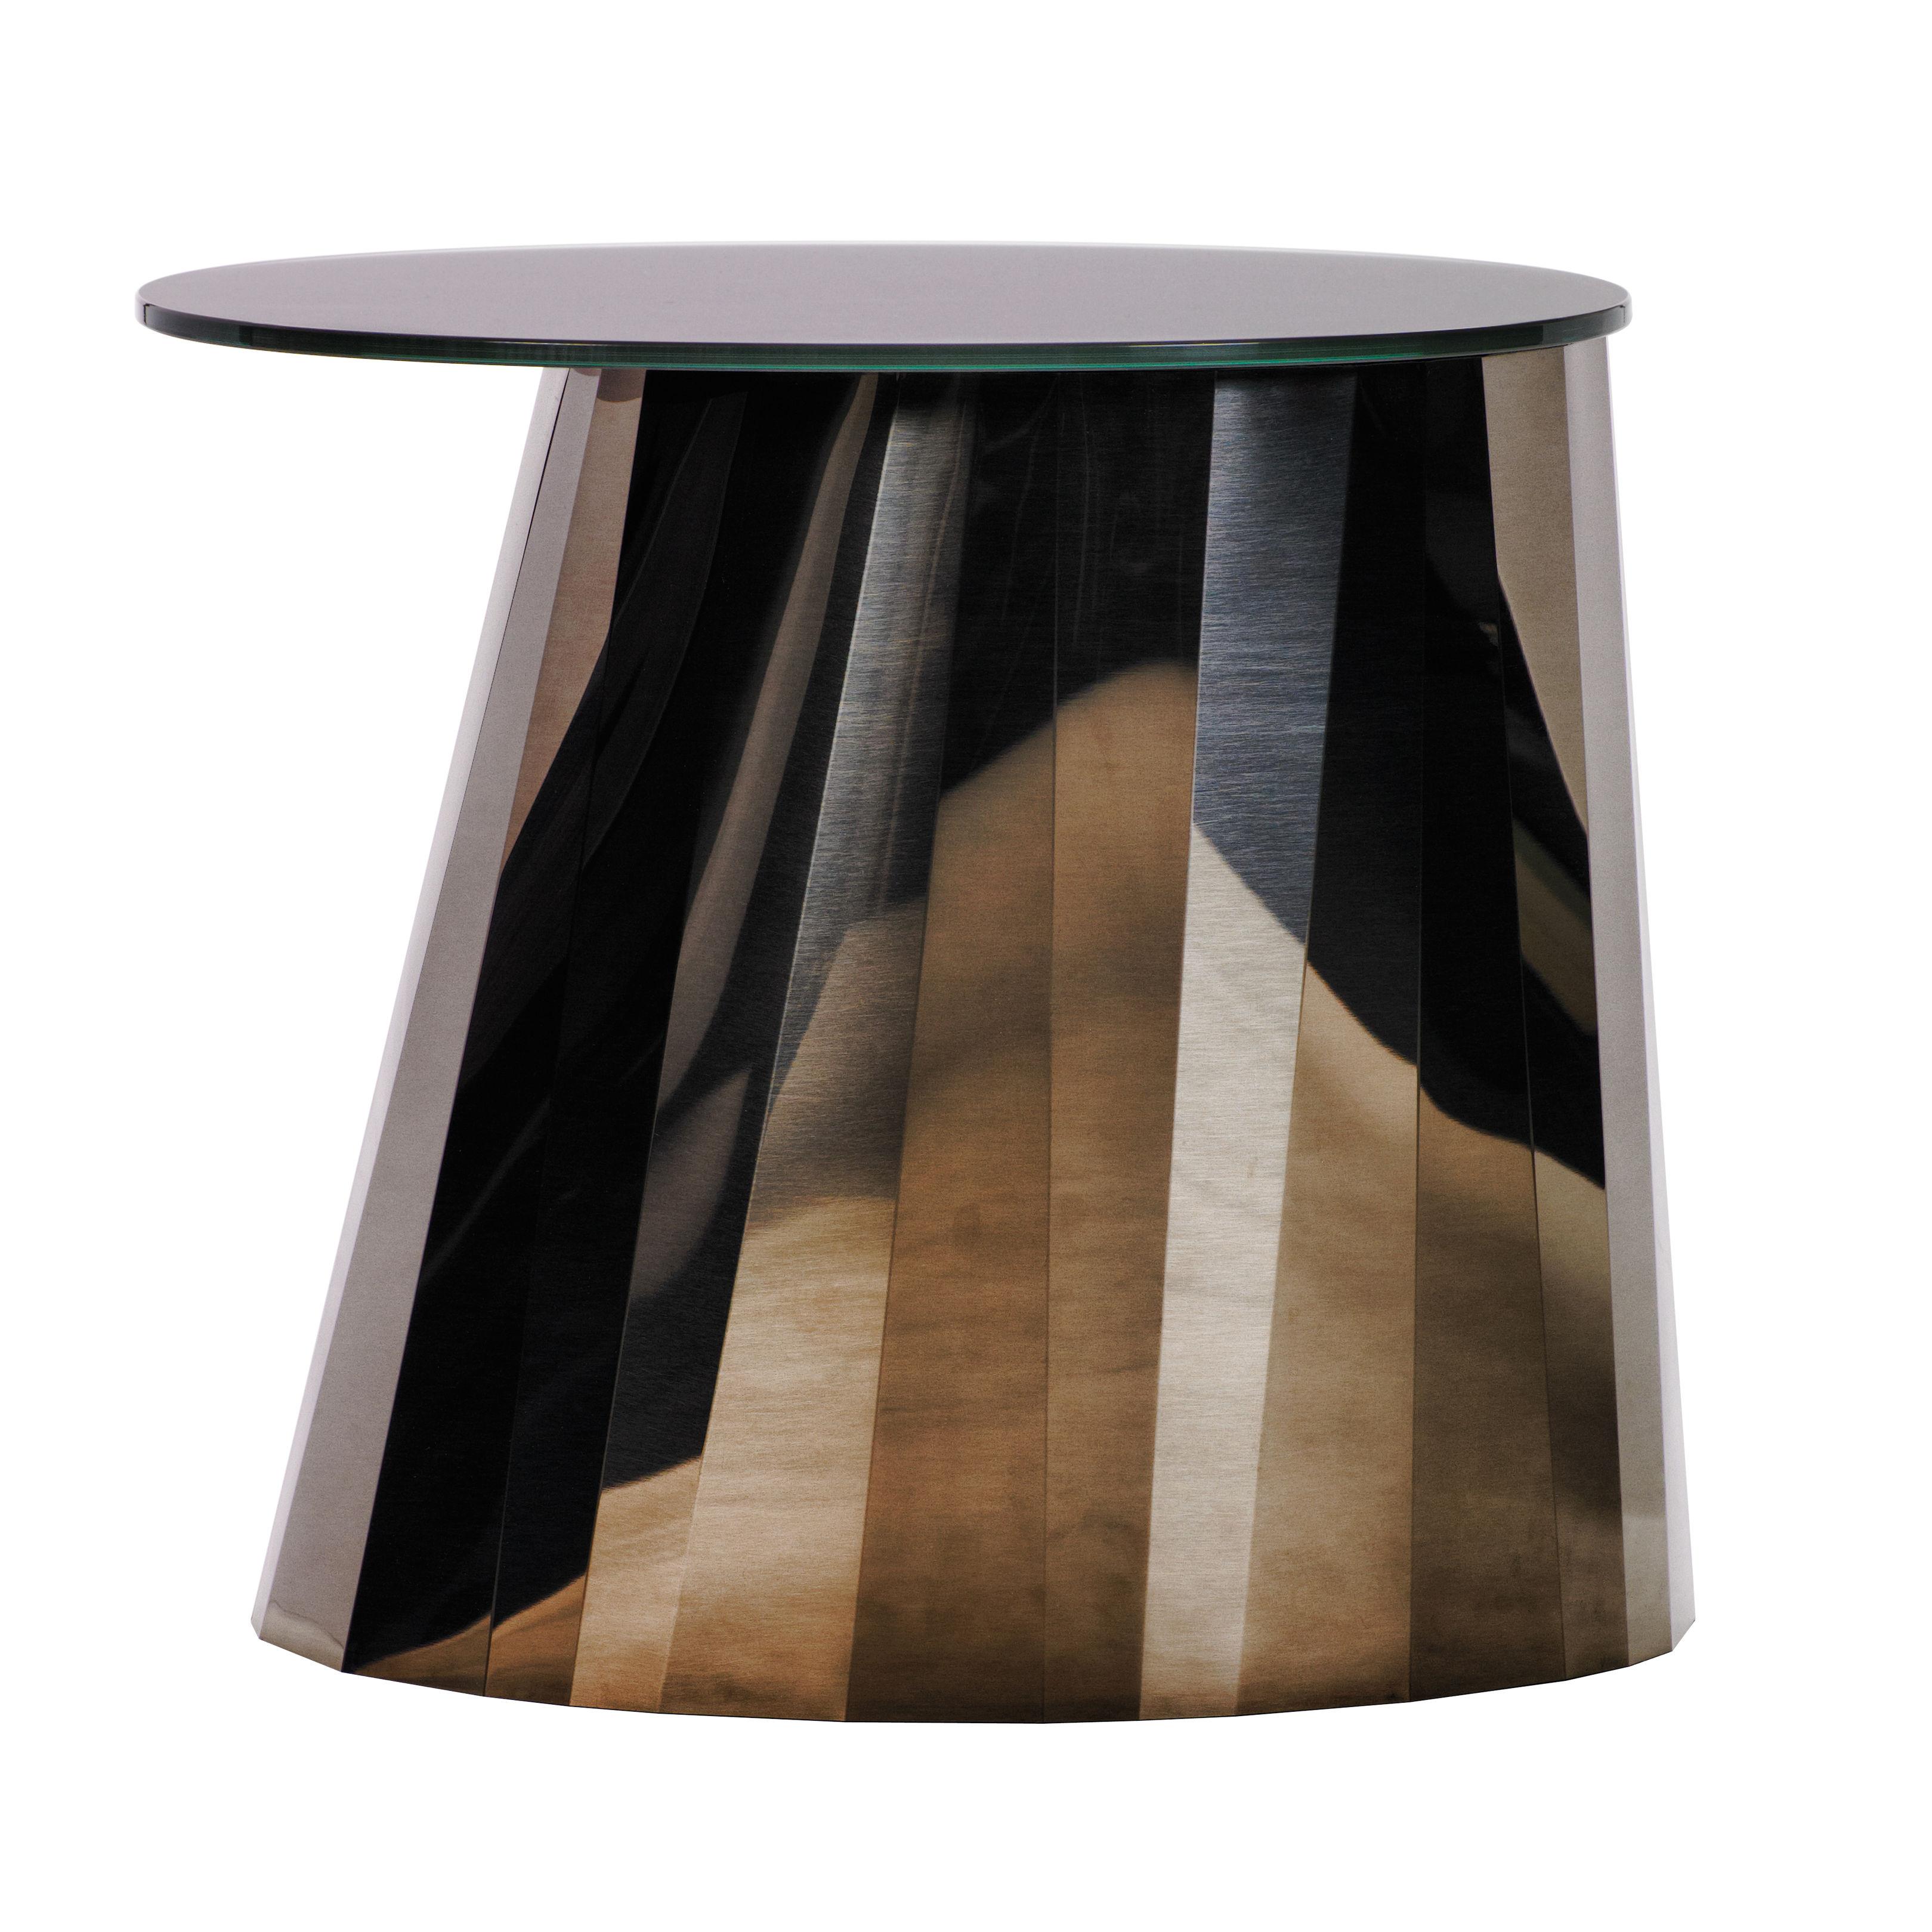 Furniture - Coffee Tables - Pli End table - 42 x 53 cm x H 48 cm by ClassiCon - Metalic bronze - Laquered glass, Stainless steel